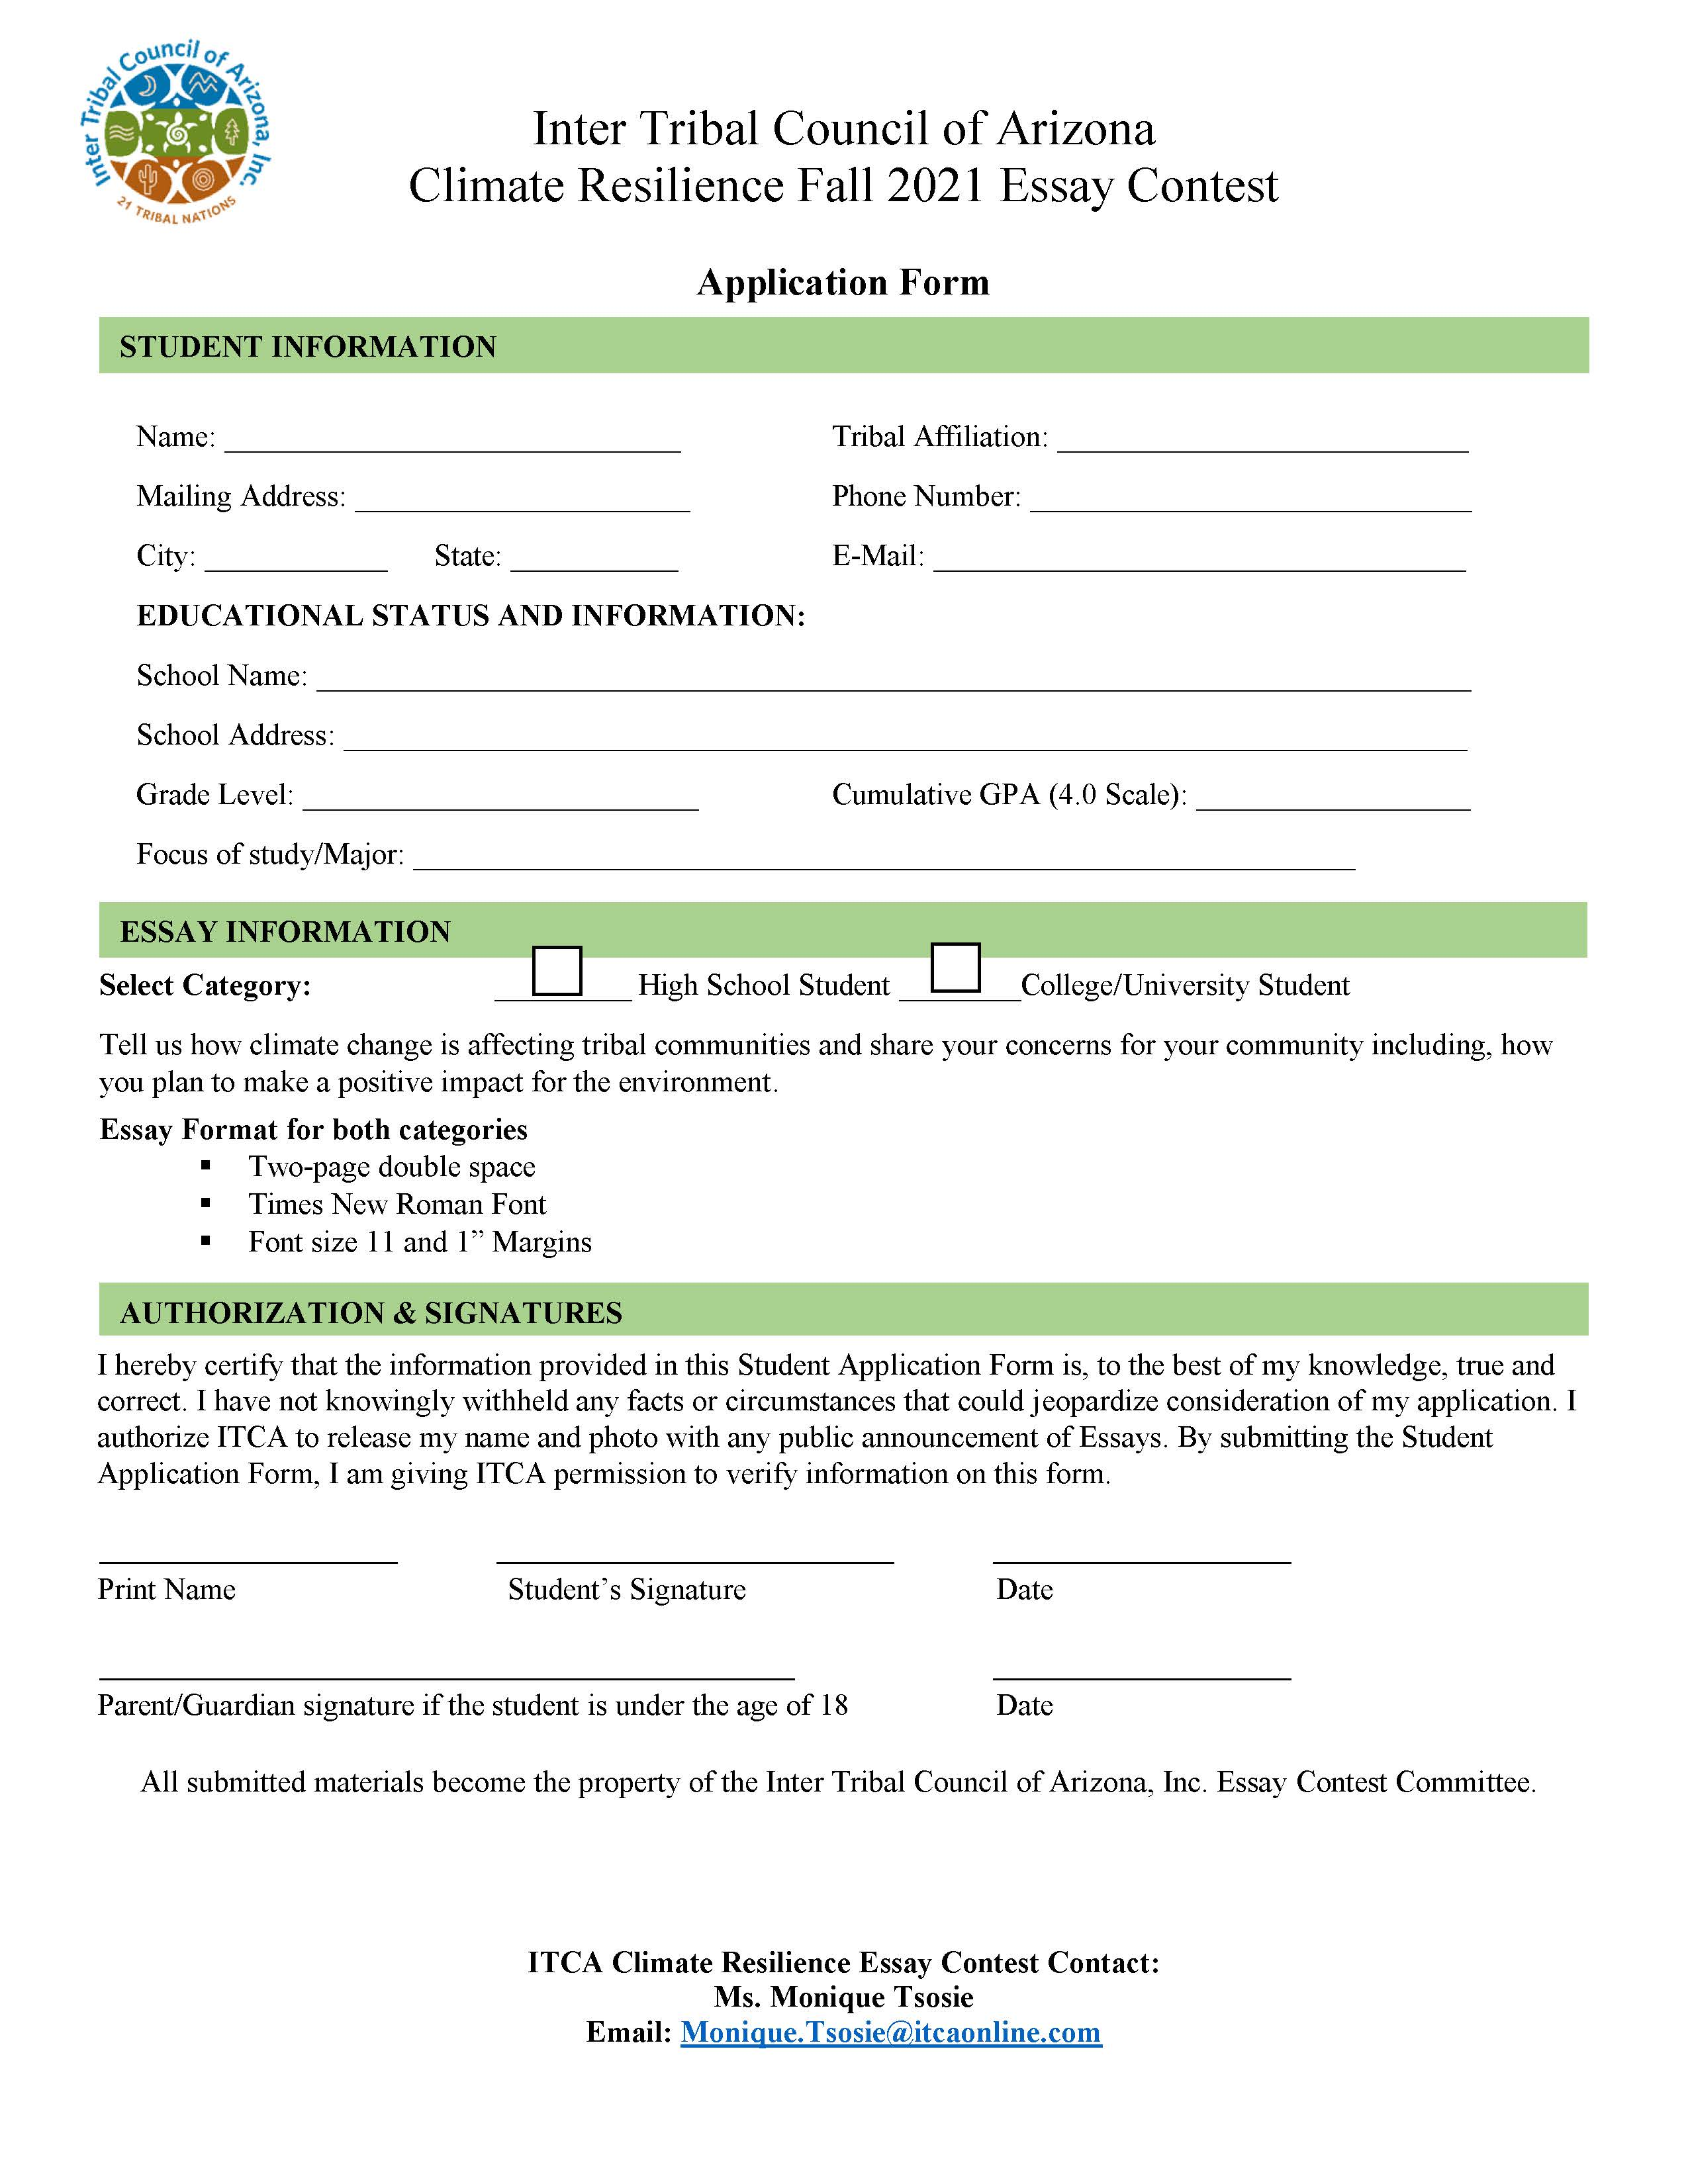 Climate Resilience Fall 2021 Essay Contest Application